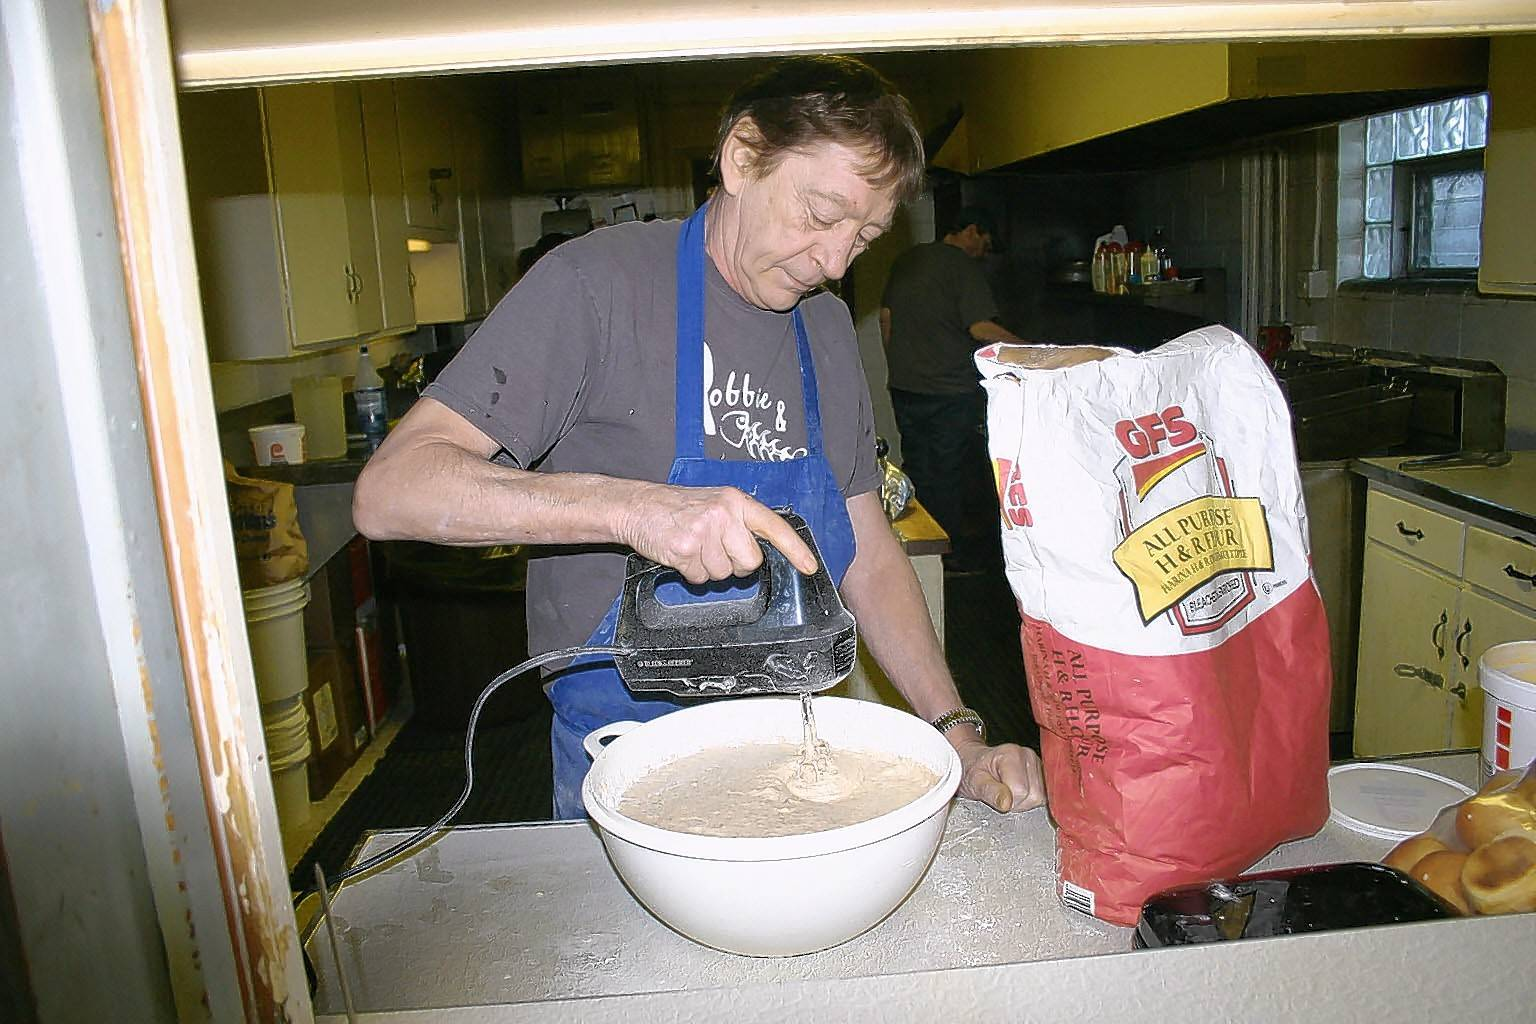 At the Veterans of Foreign Wars post in West Dundee, cook Robbie Robinson mixes secret ingredients into a bowl full of batter that will coat the cod he serves to 100 patrons. The post serves a fish fry on Friday nights, January through May.